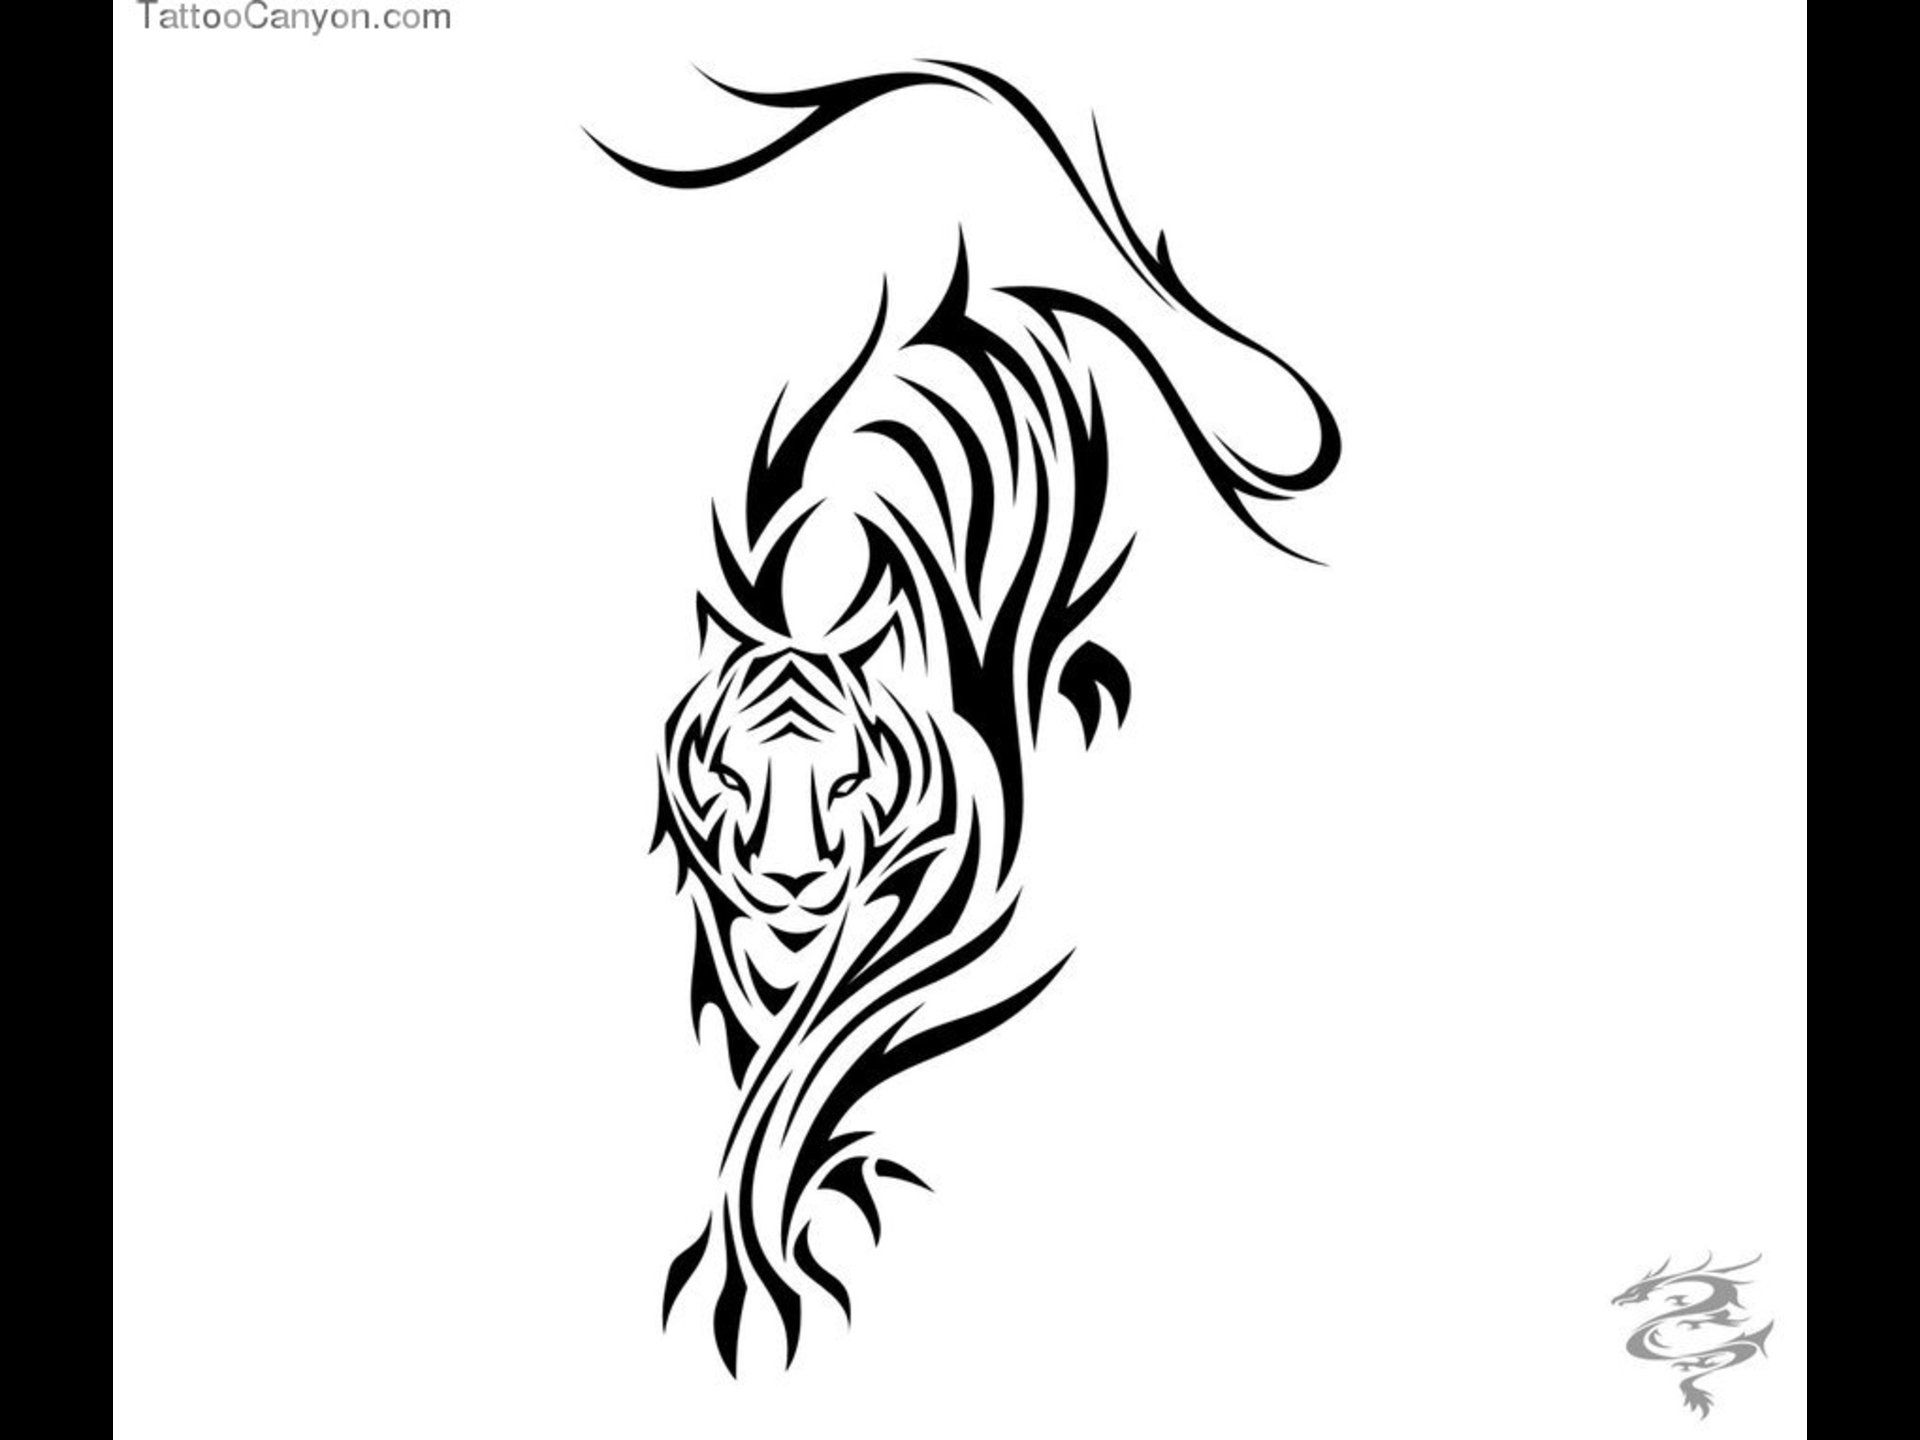 celtic tiger tattoo designs chinese zodiac tiger tattoo drawing and painting pinterest. Black Bedroom Furniture Sets. Home Design Ideas